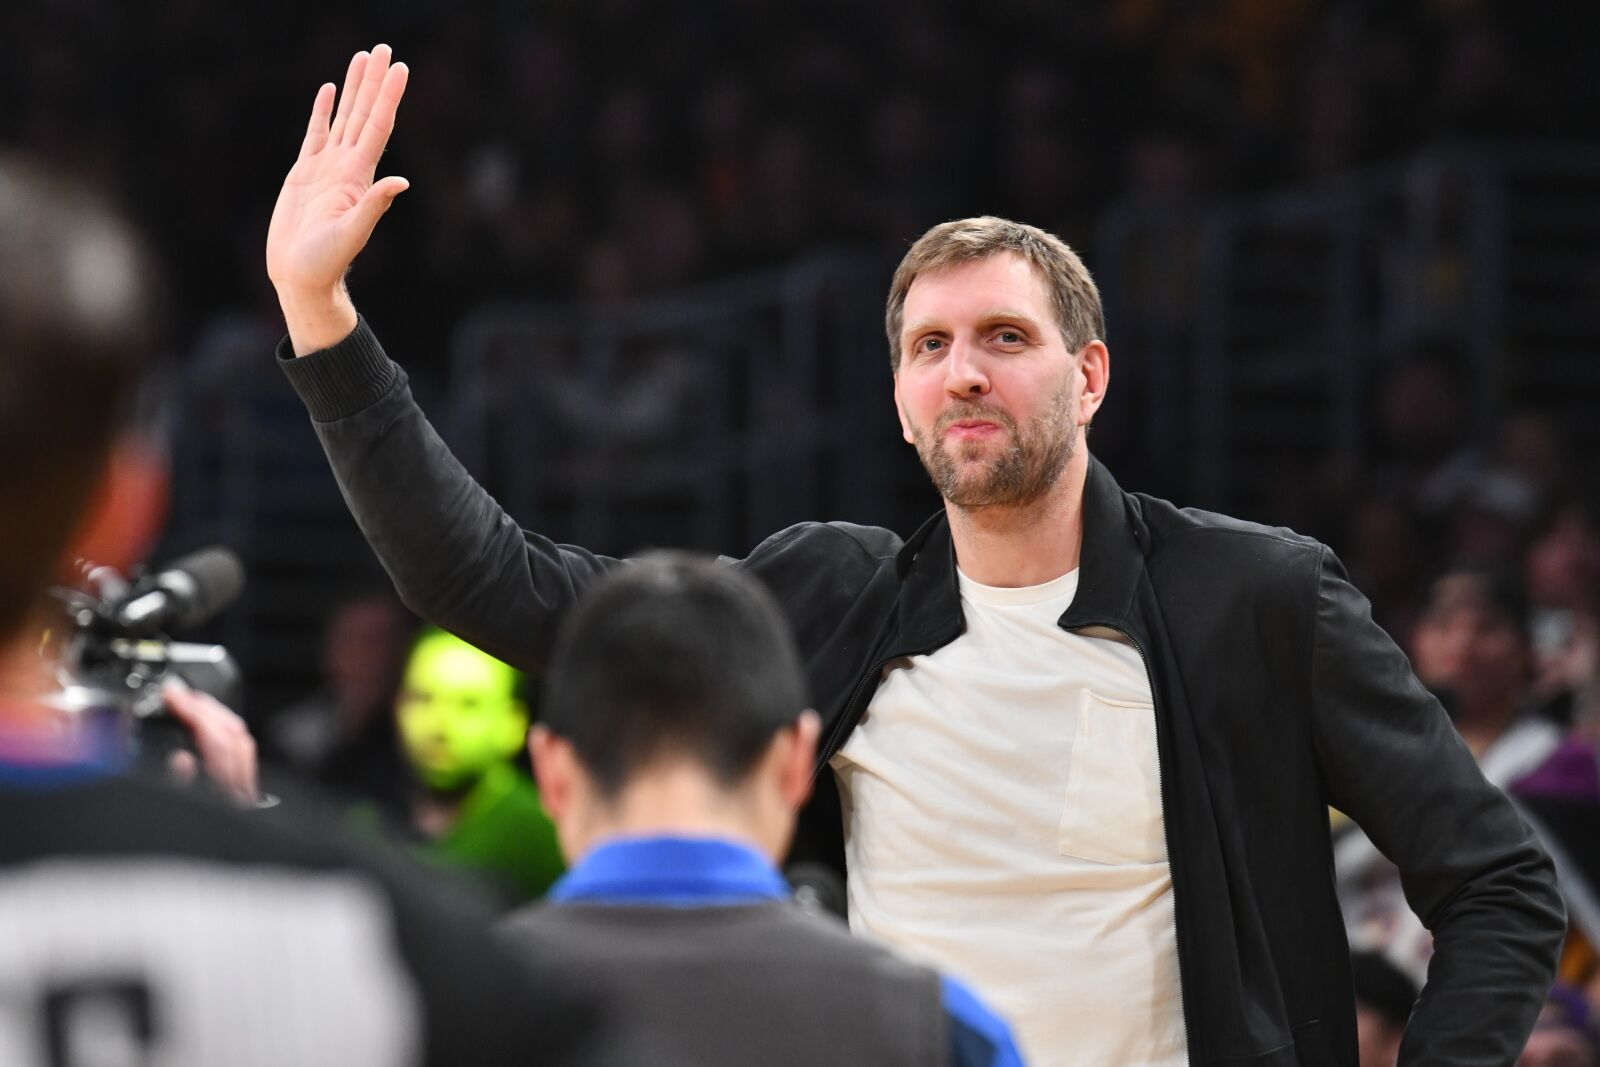 Los Angeles Lakers: Team pays respects to NBA legend Dirk Nowitzki with tribute video